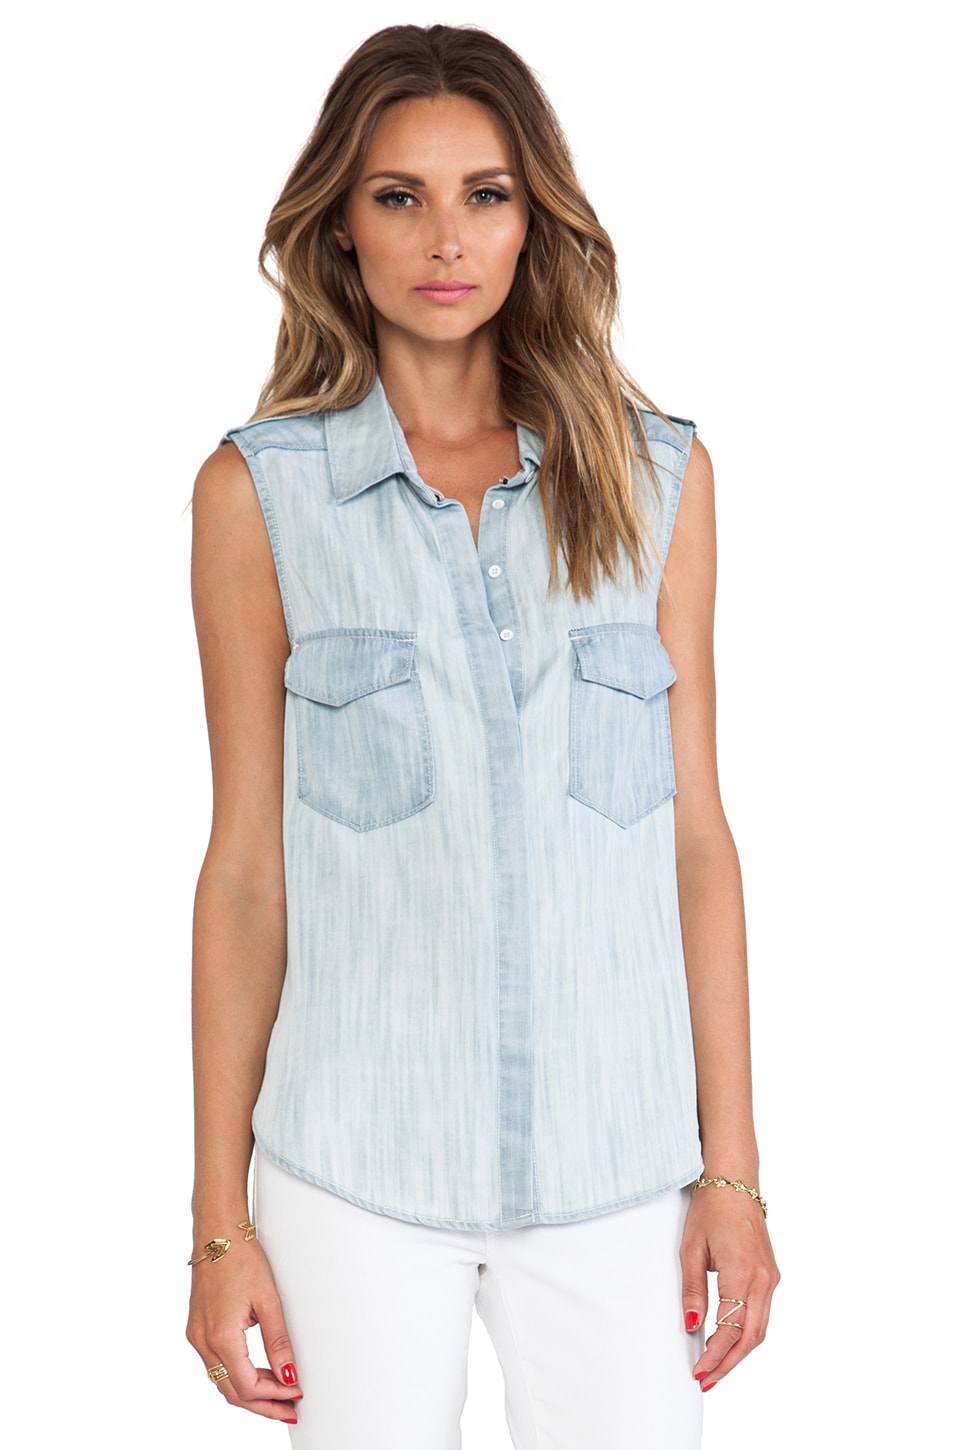 C&C California Surf Wash Button Down Top in Chambray Multi